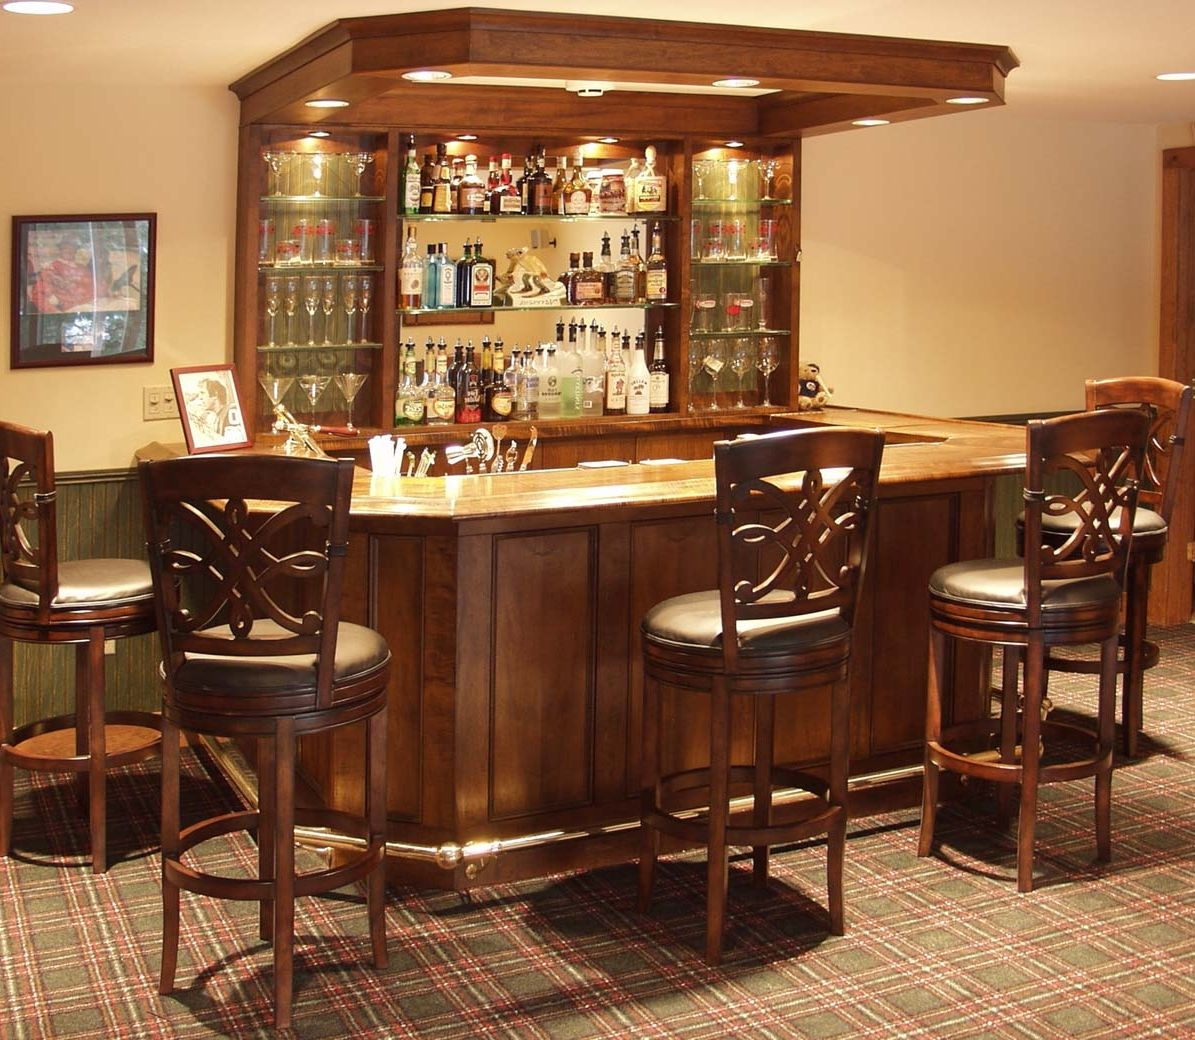 Home Bars Design Ideas: 35 Best Home Bar Design Ideas